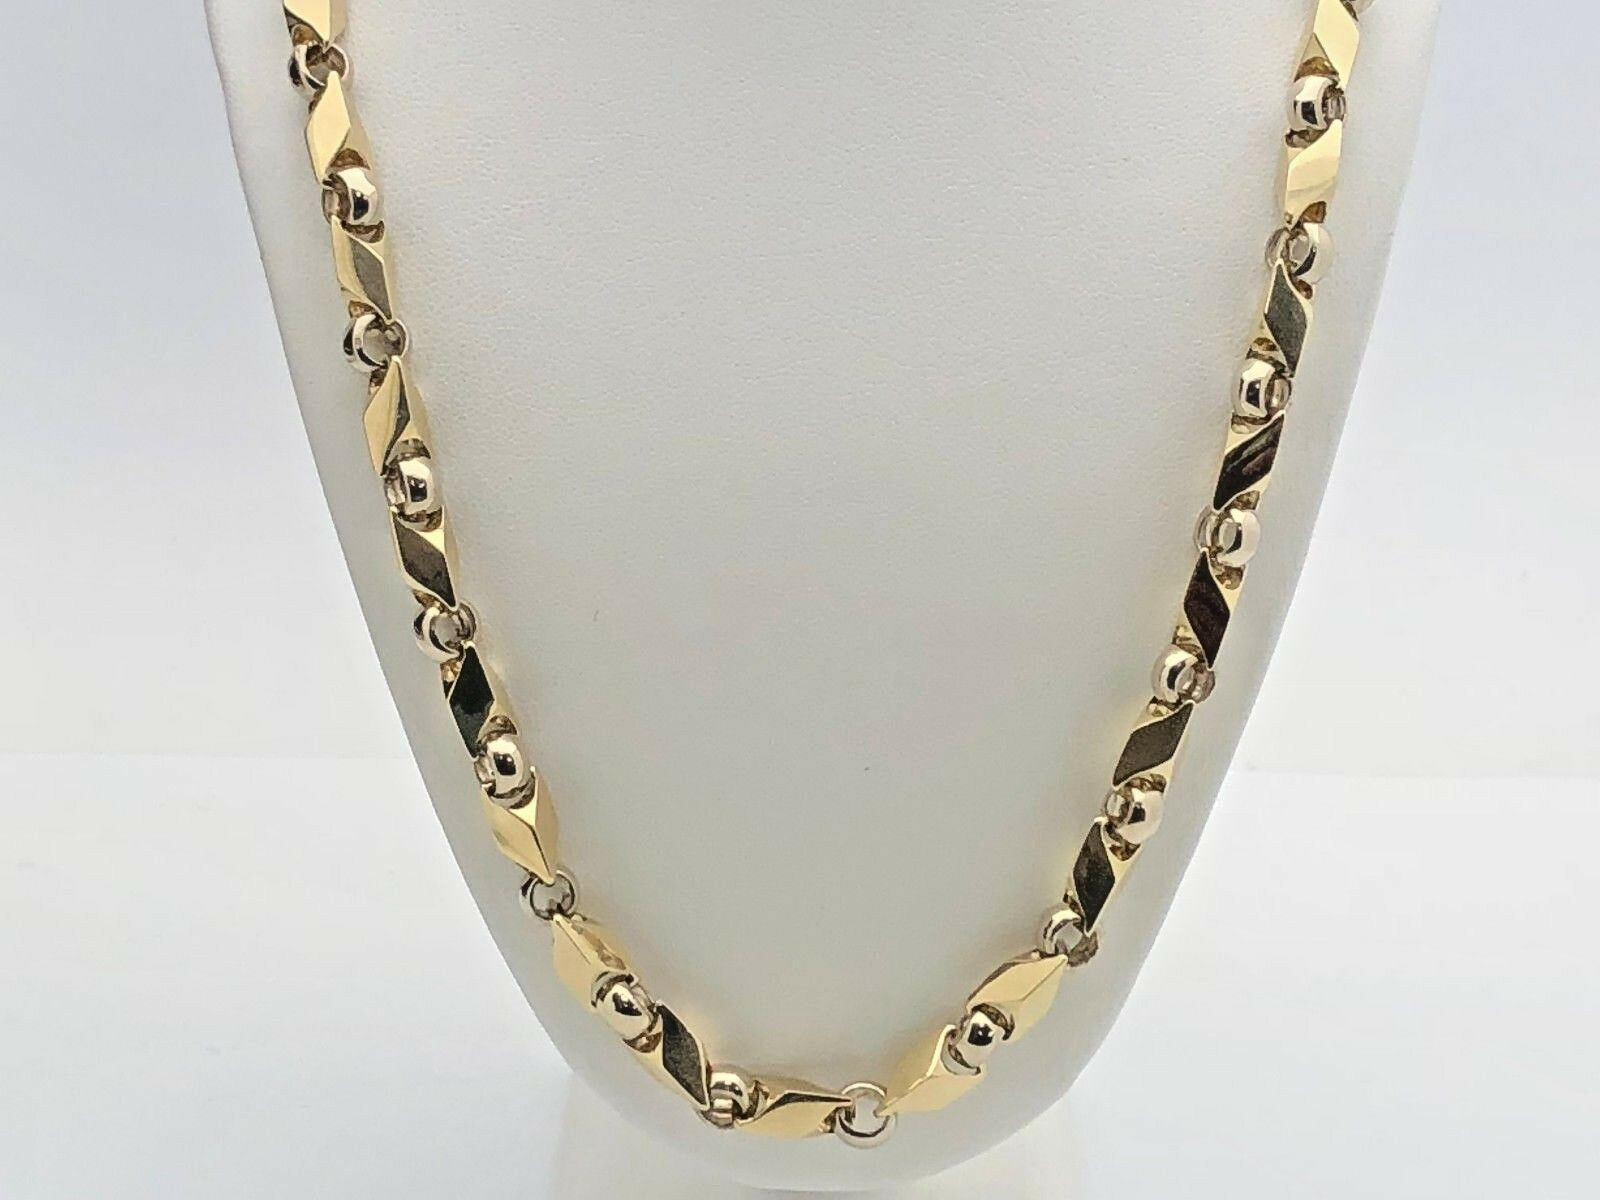 a29f1f4d2e324 Details about Men's 14k Two Tone Gold Handmade Fashion Link Necklace 20